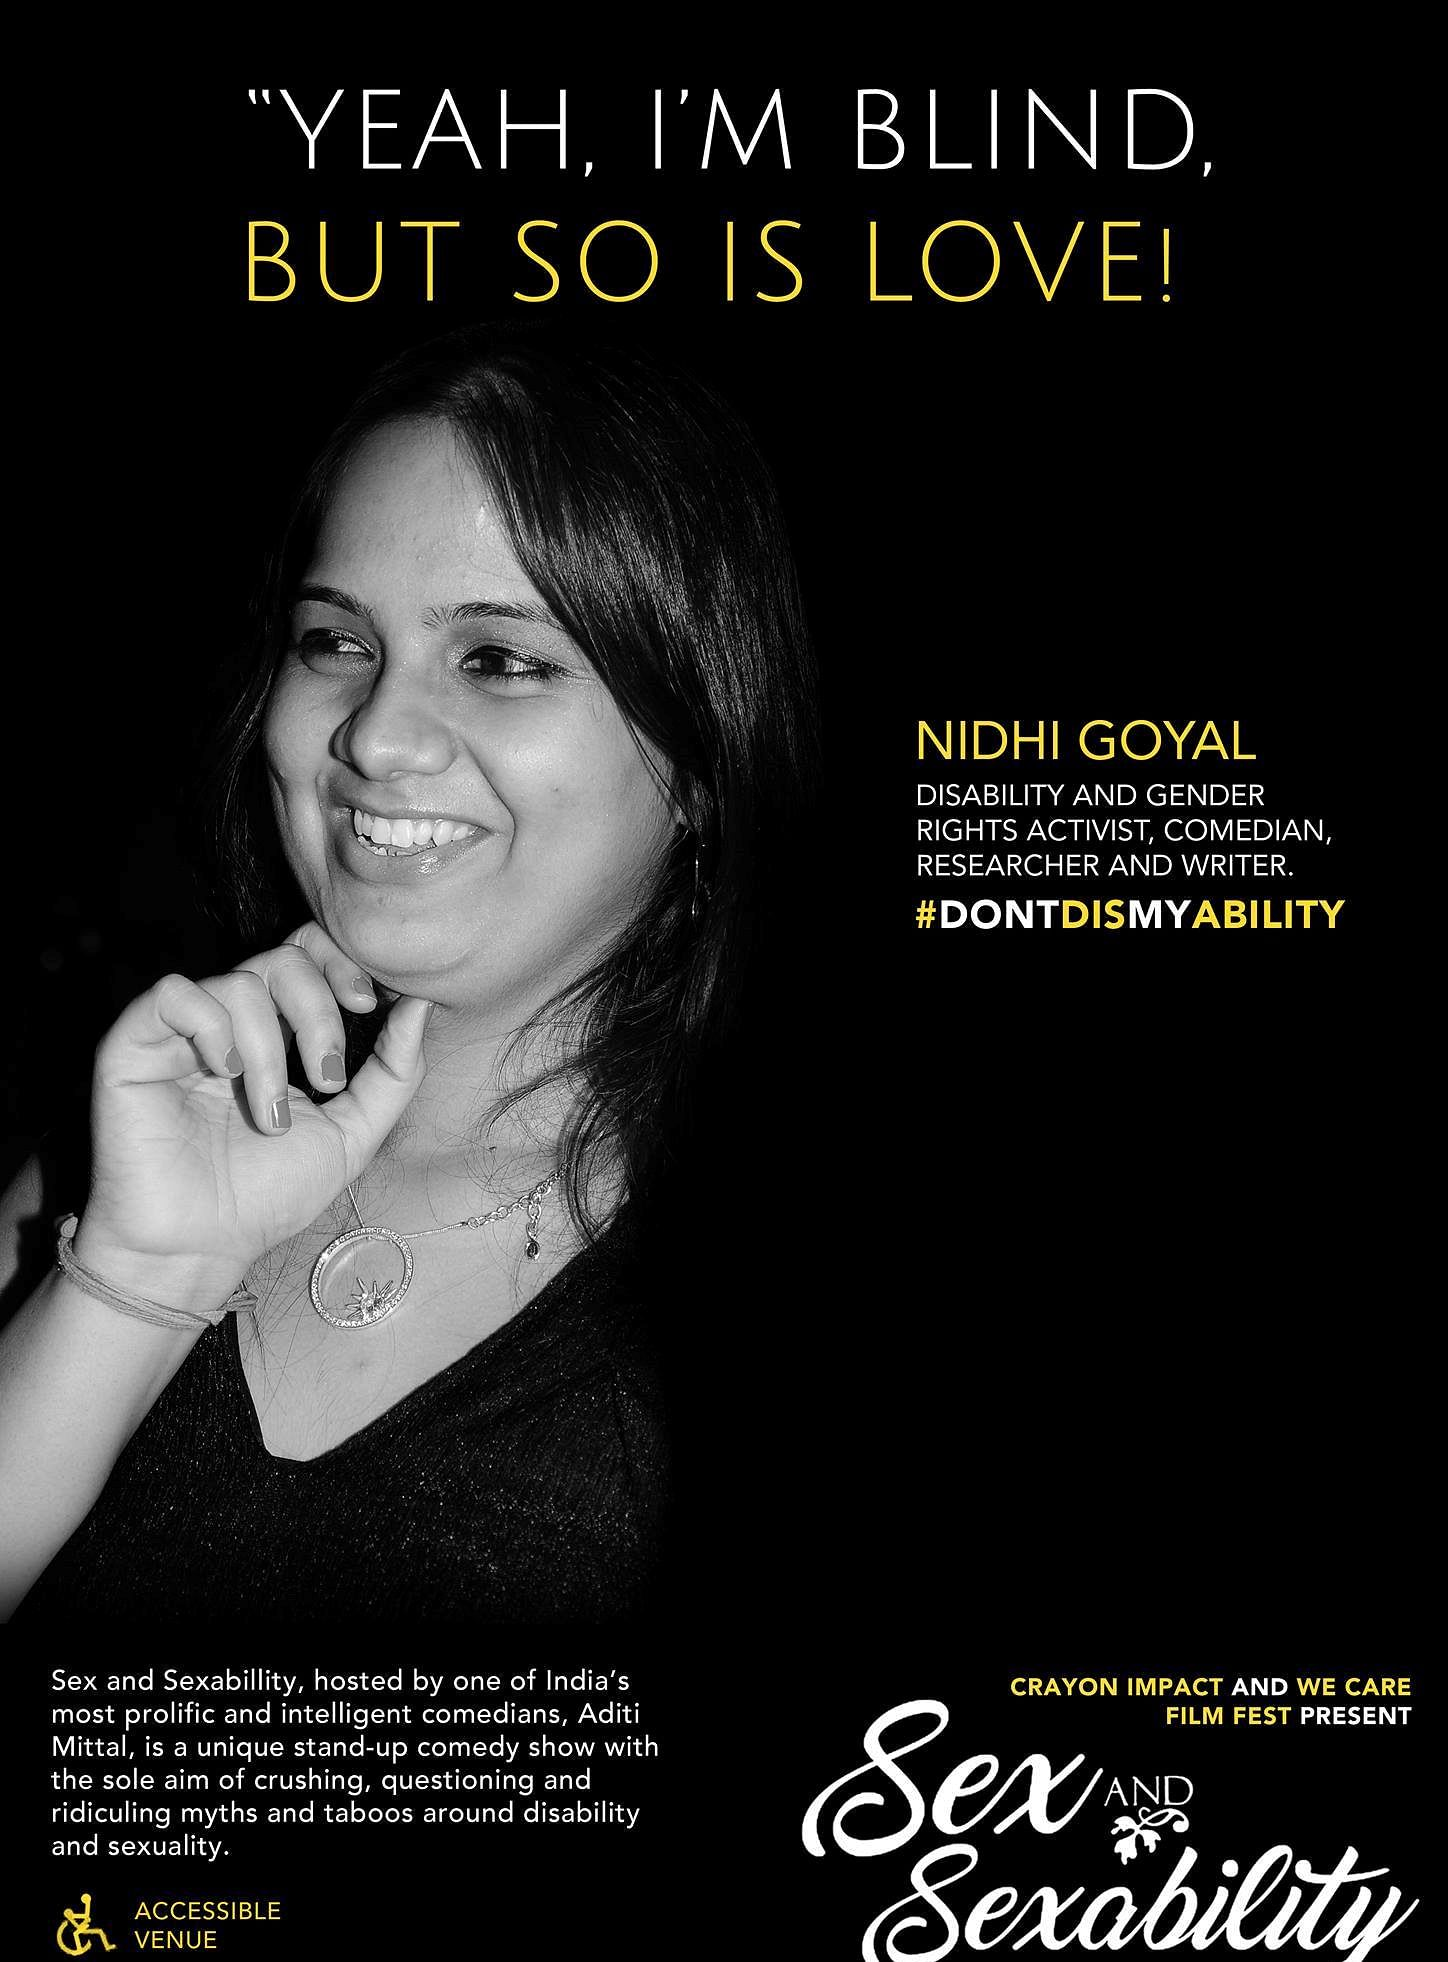 Nidhi Goyal - India's first disabled woman comedian